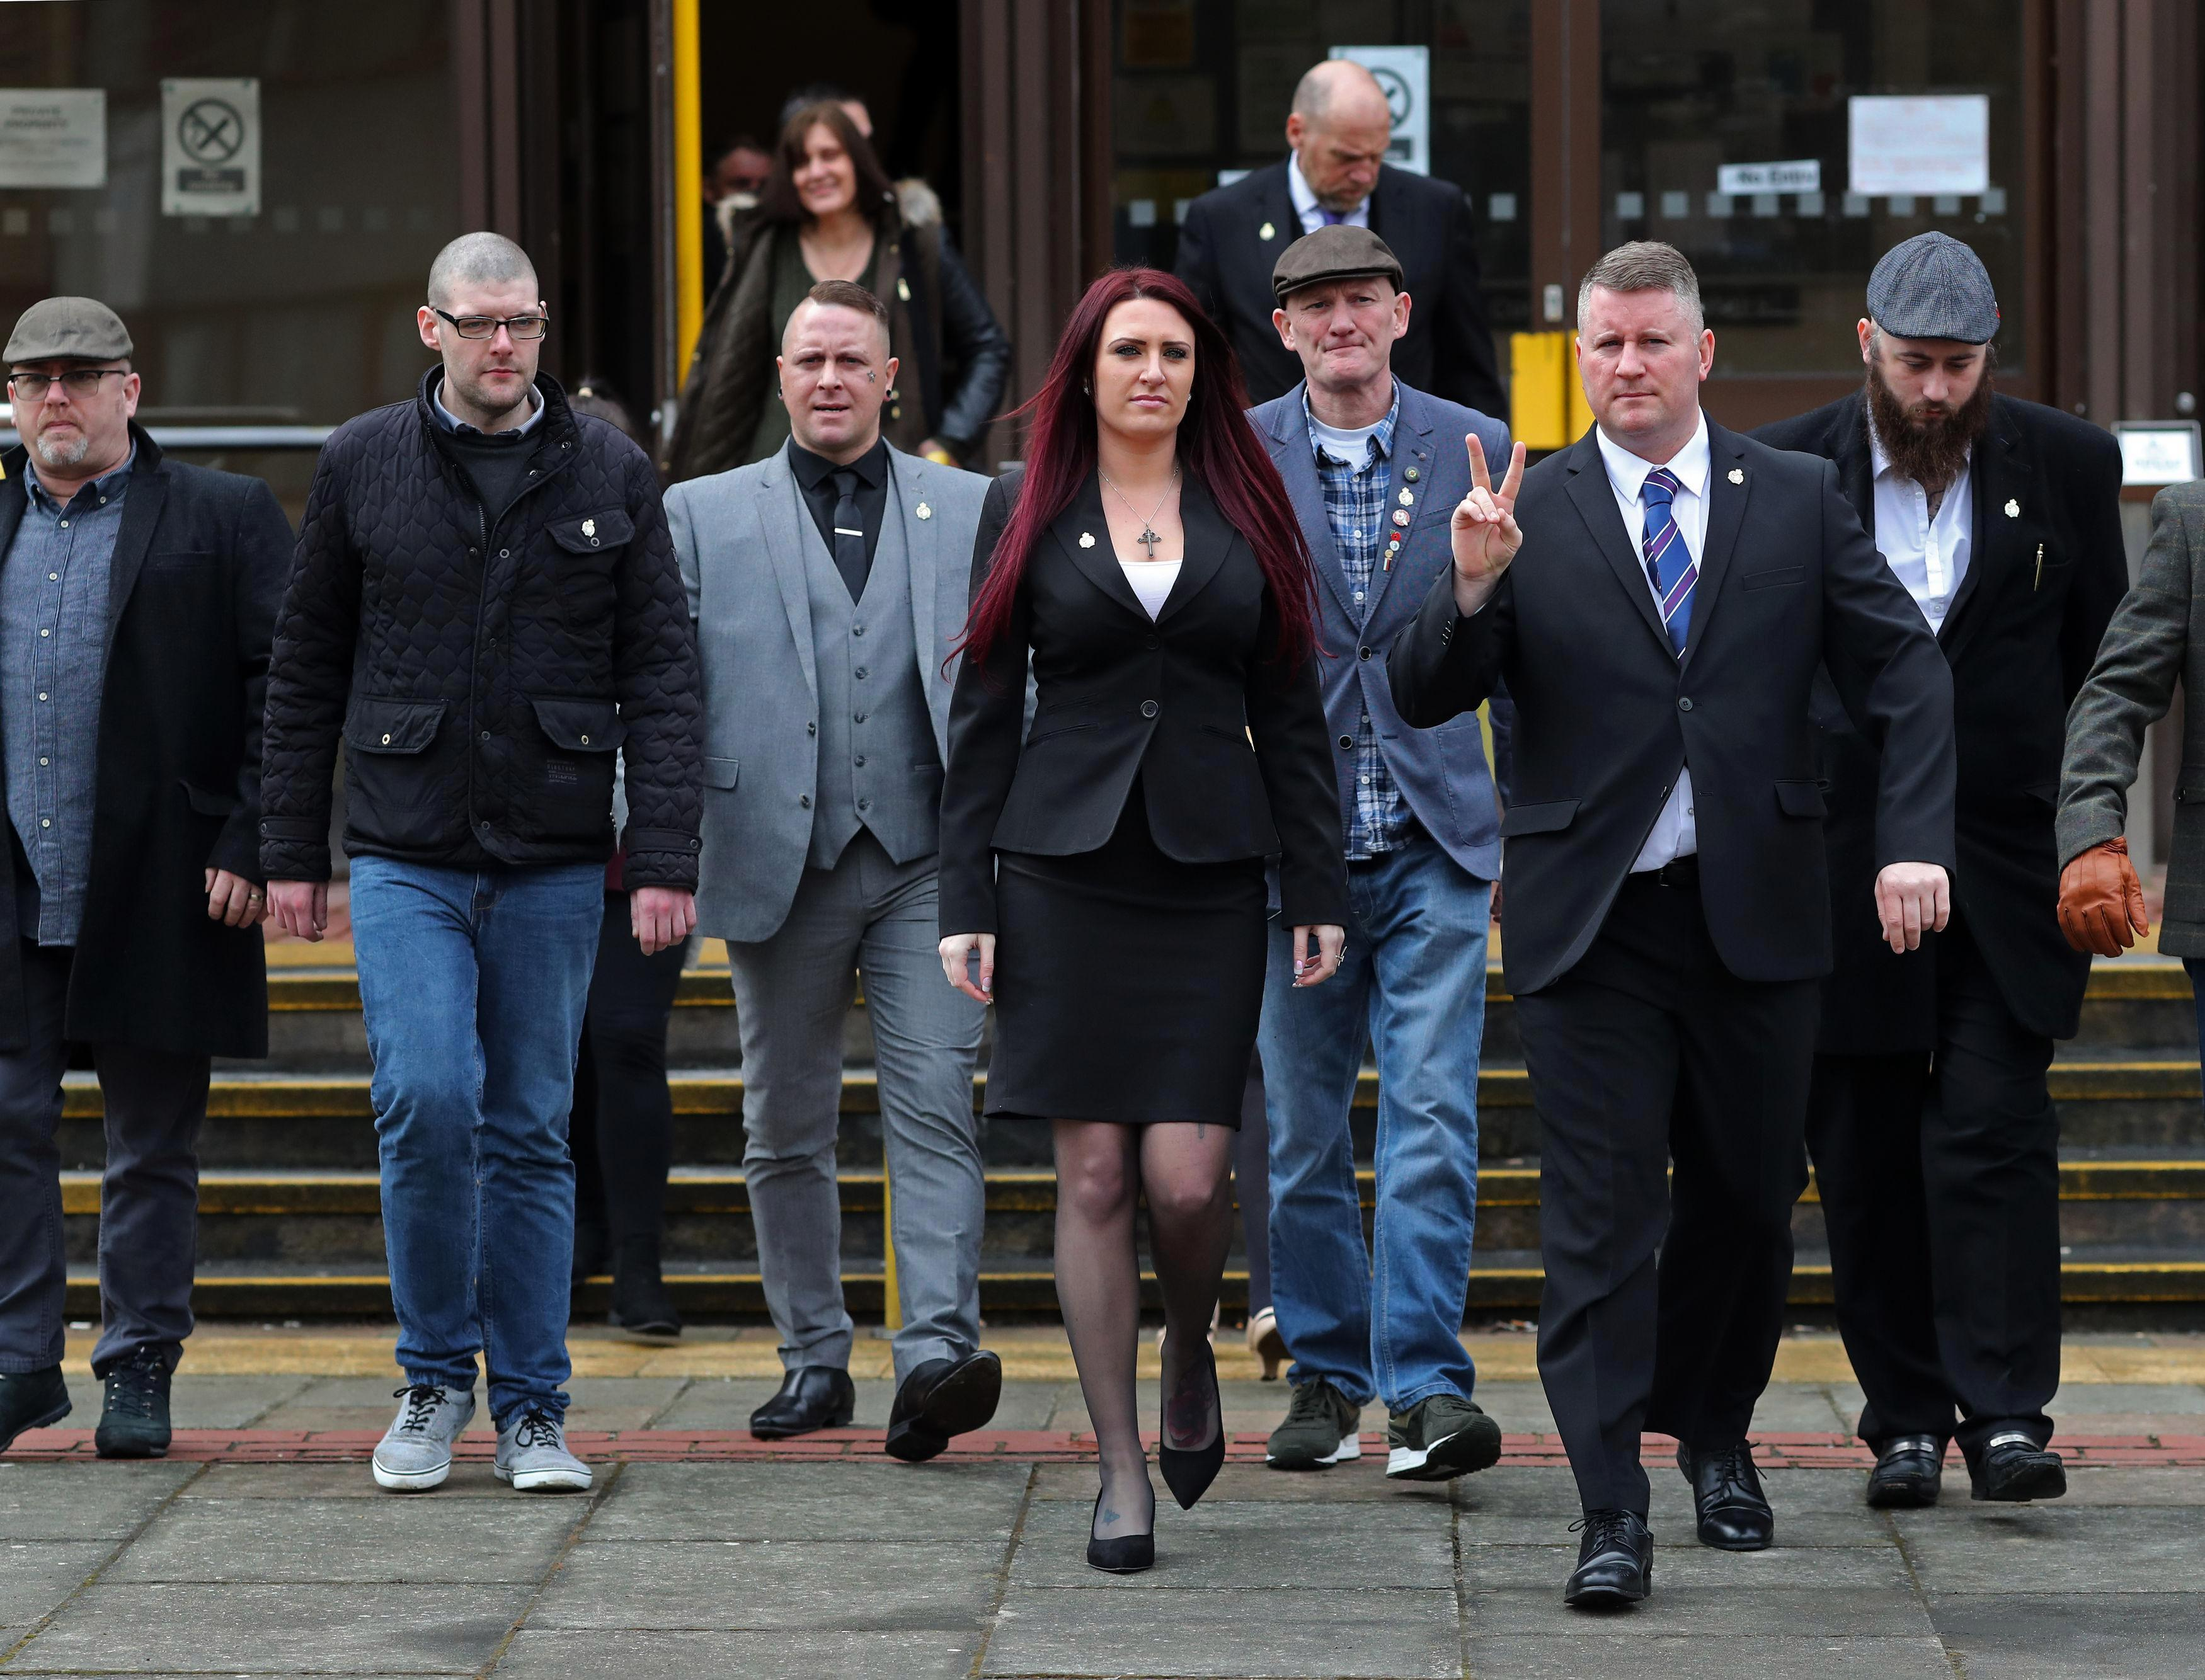 Britain First leaders Paul Golding and Jayda Fransen jailed for a combined 54 weeks after racially abusing Muslim men